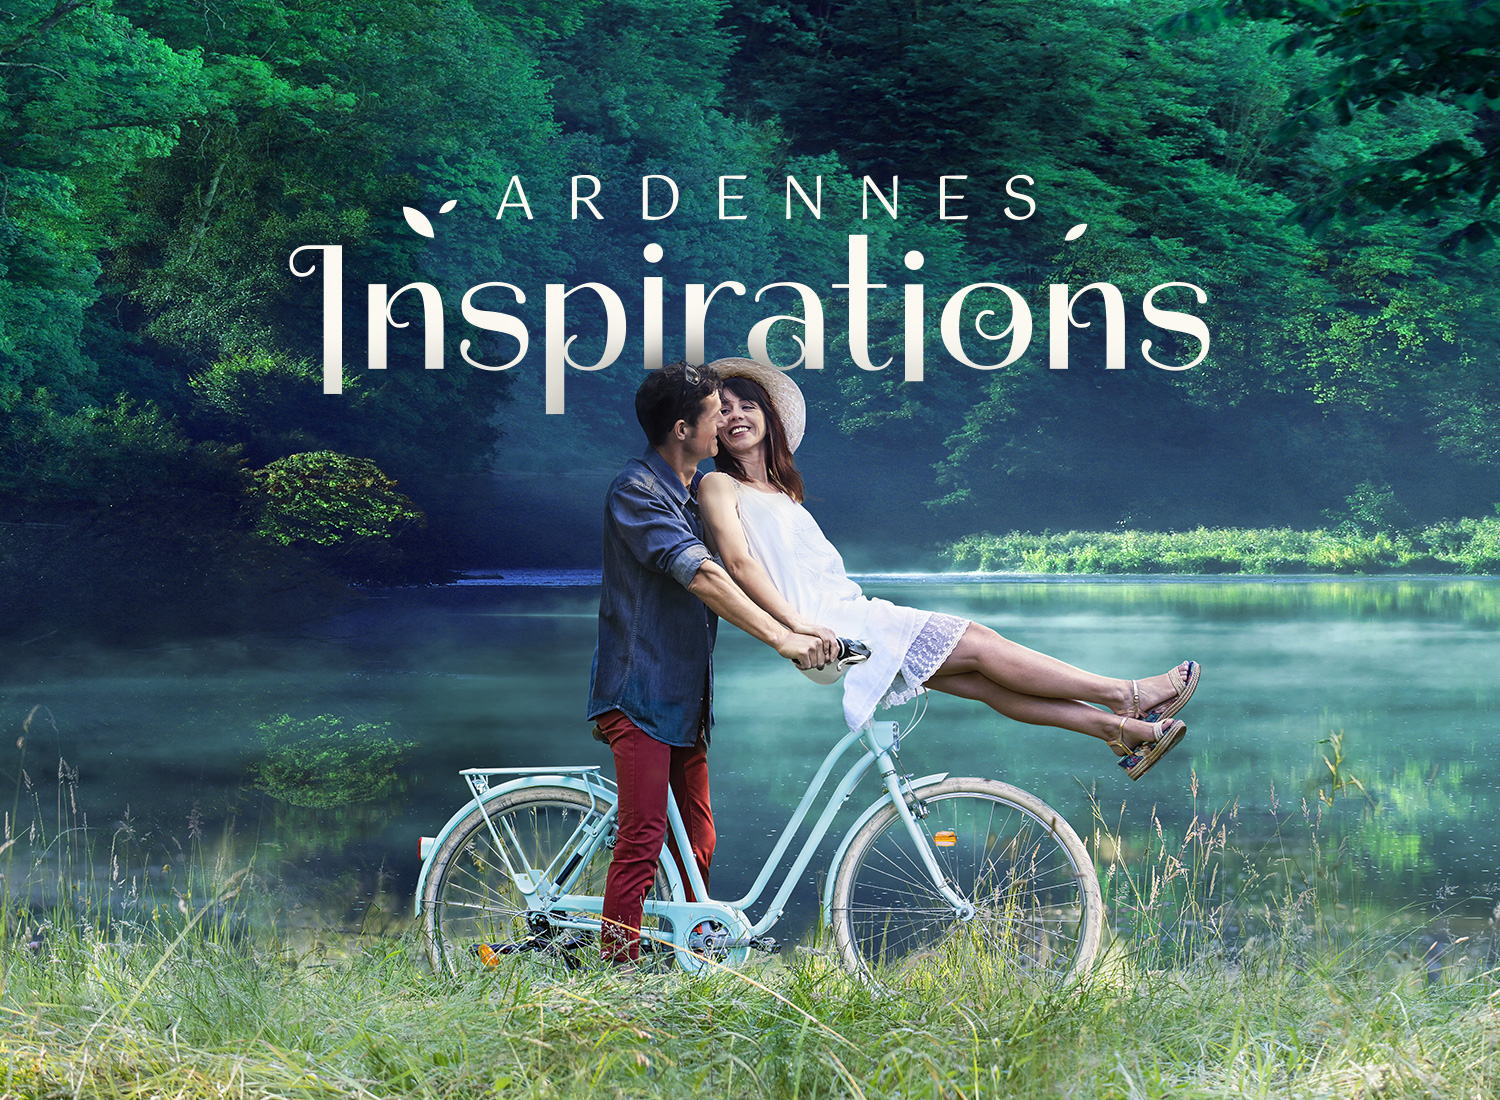 Magazine inspirations Ardennes